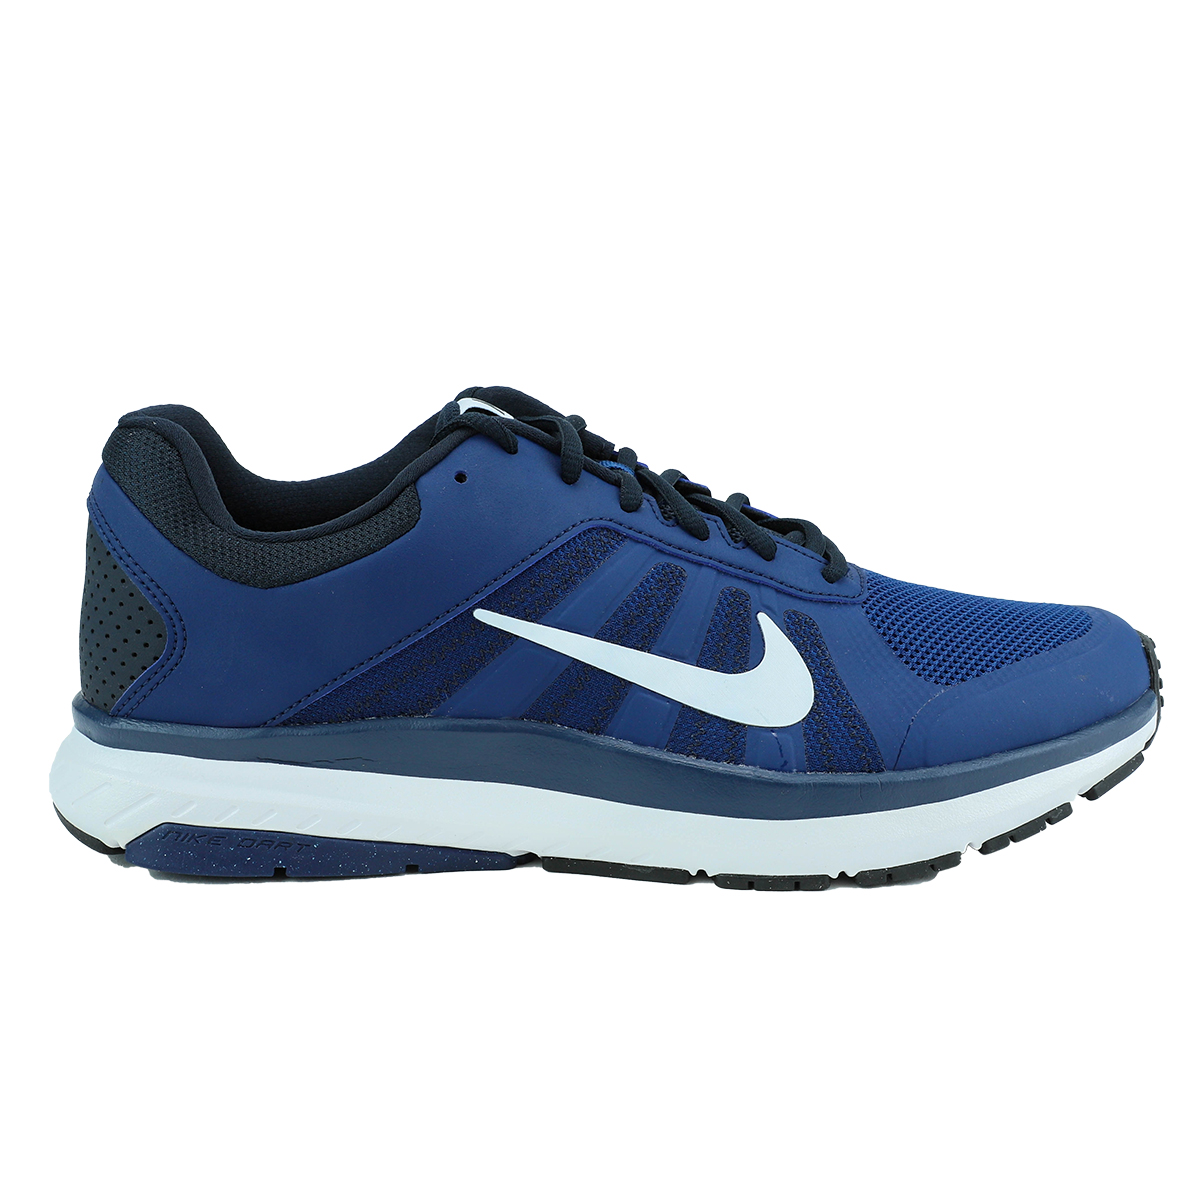 Nike-Men-039-s-Dart-12-MSL-Running-Shoes thumbnail 11